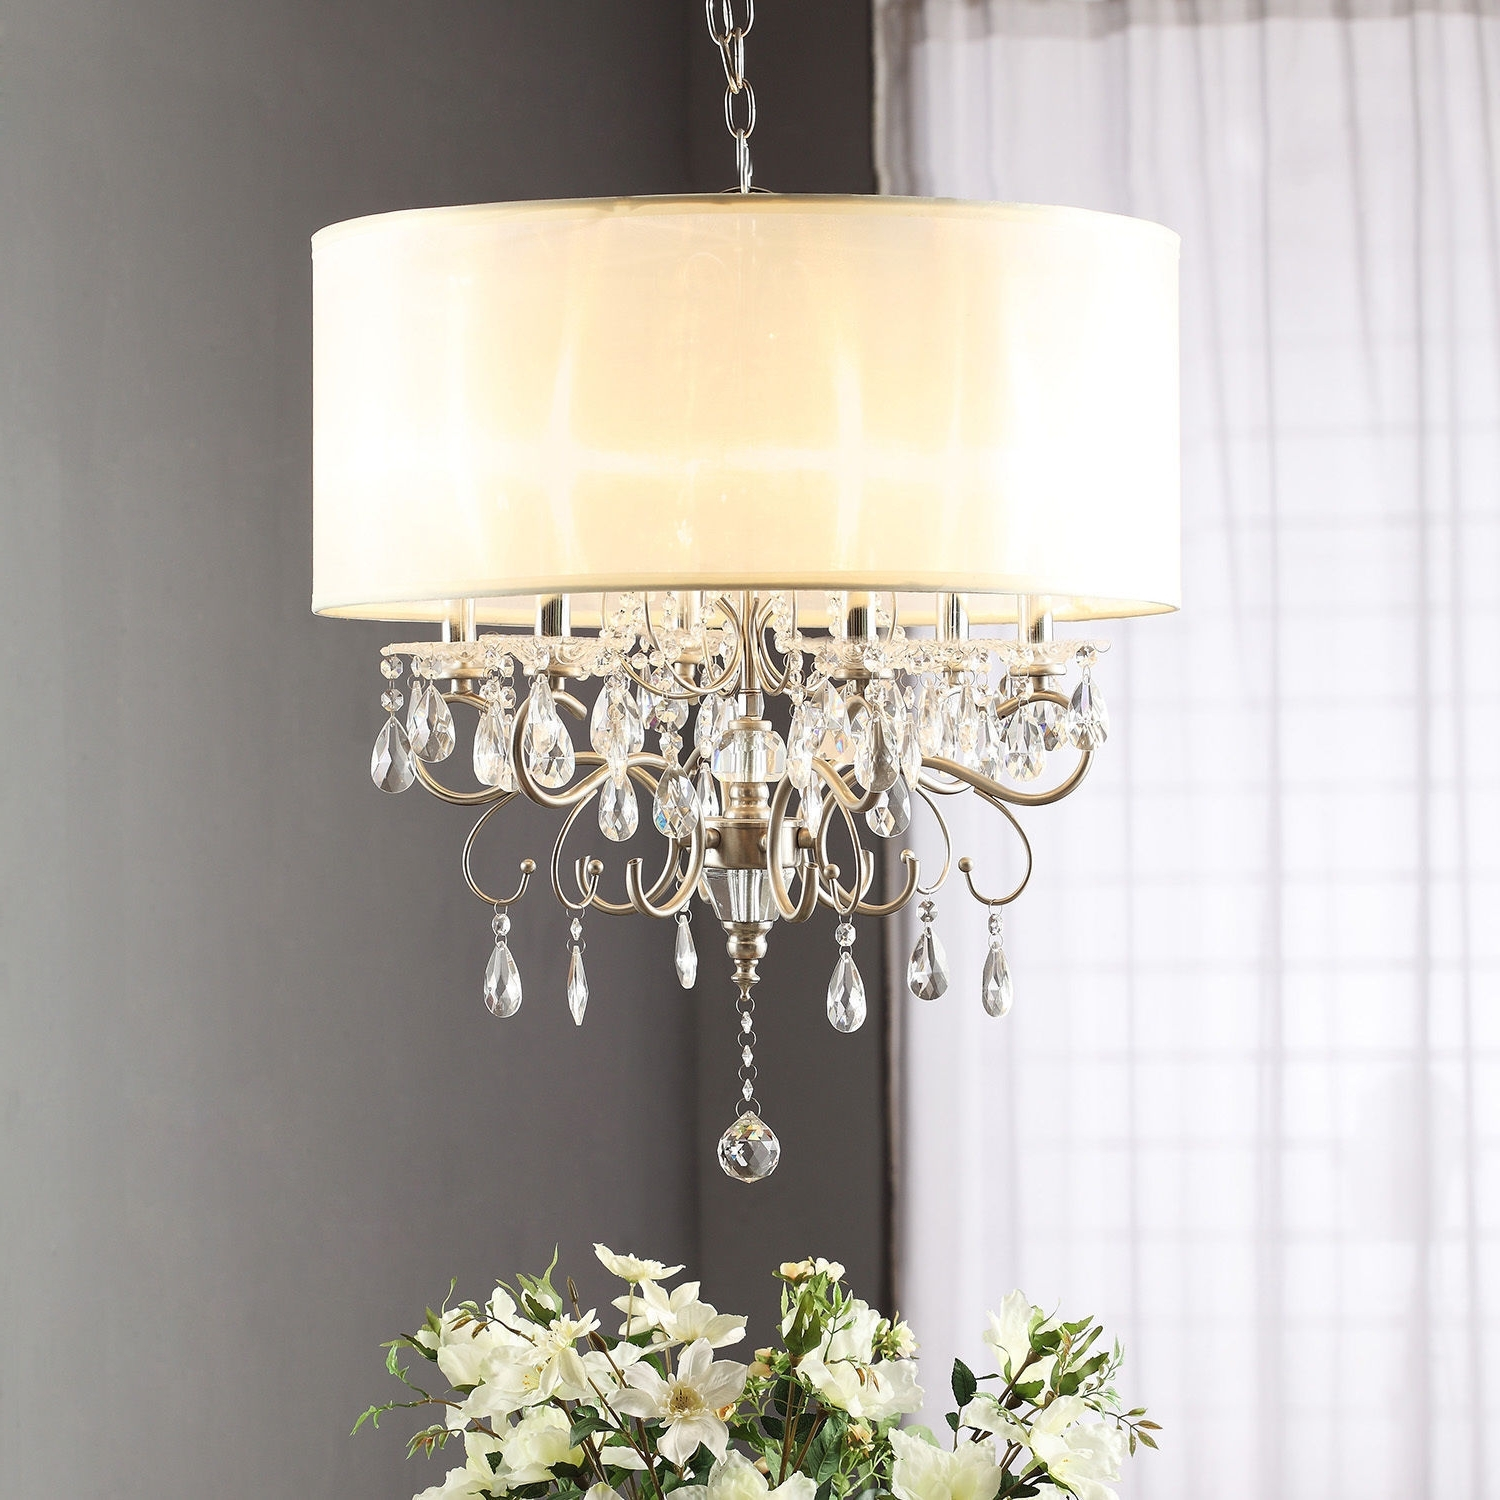 Cream Chandelier Lights Regarding Most Popular Drum Shade Chandelier With Crystals Brizzo Lighting Brass (View 2 of 15)